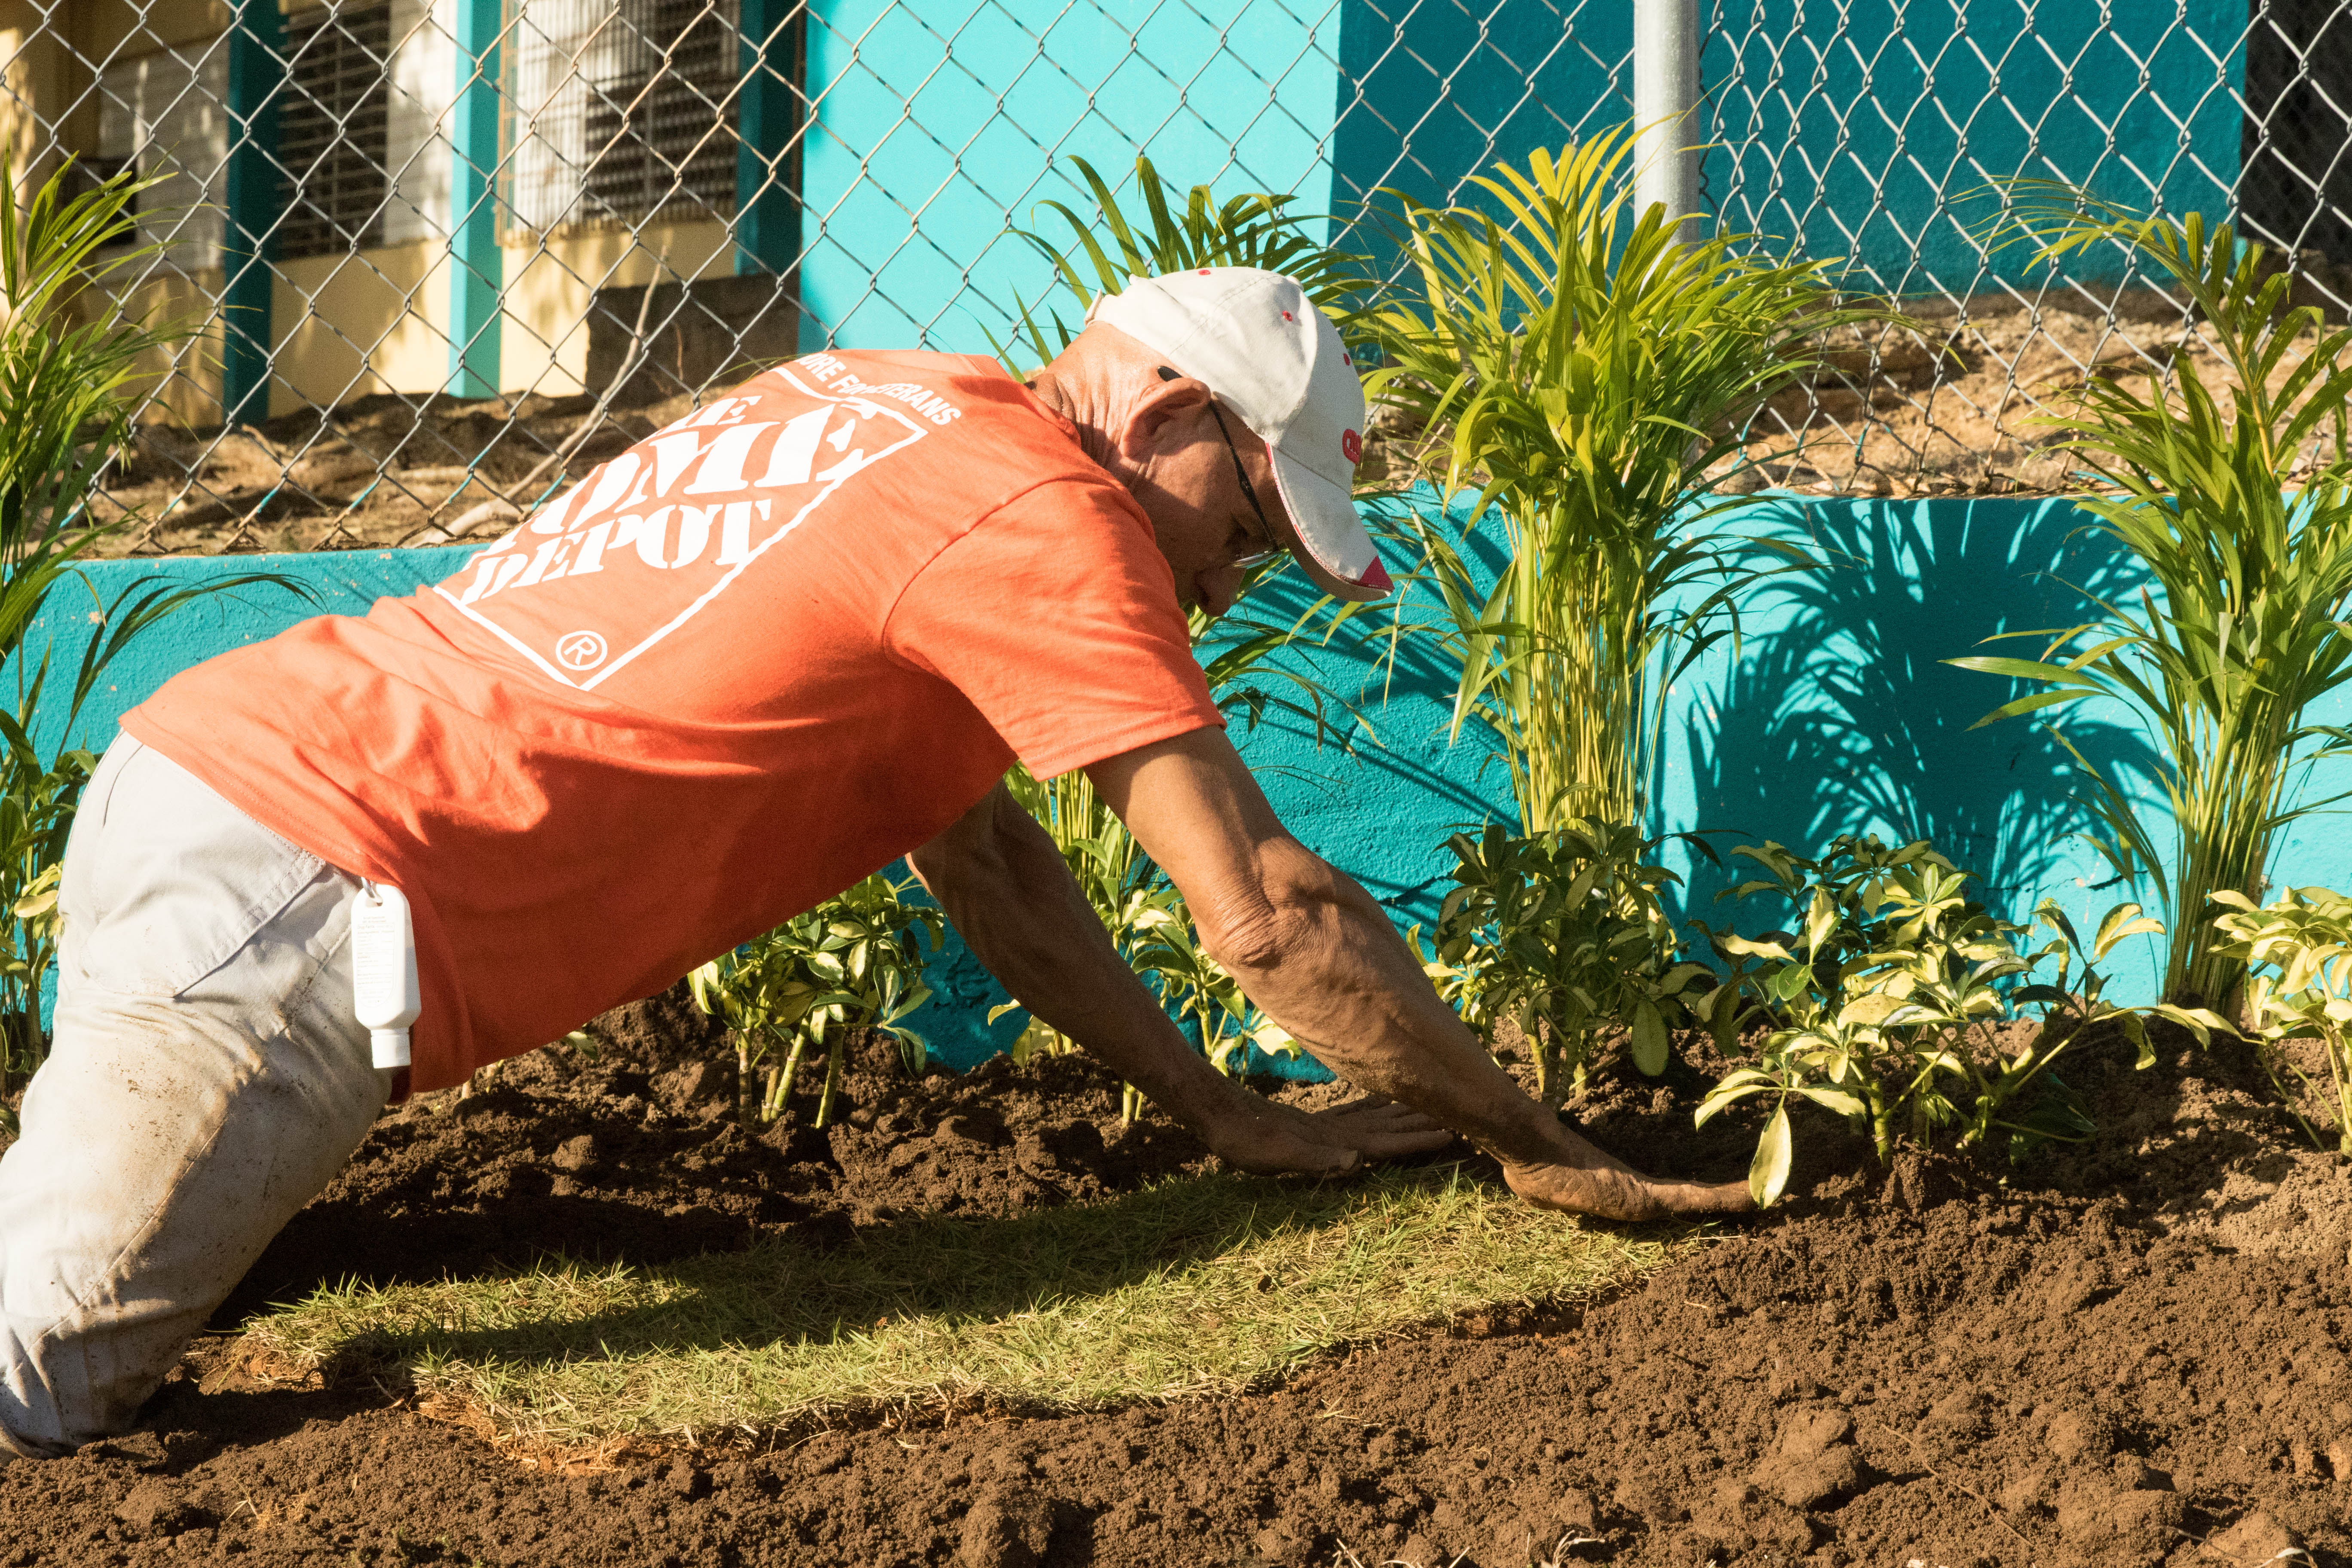 Team Depot rebuilds in Puerto Rico